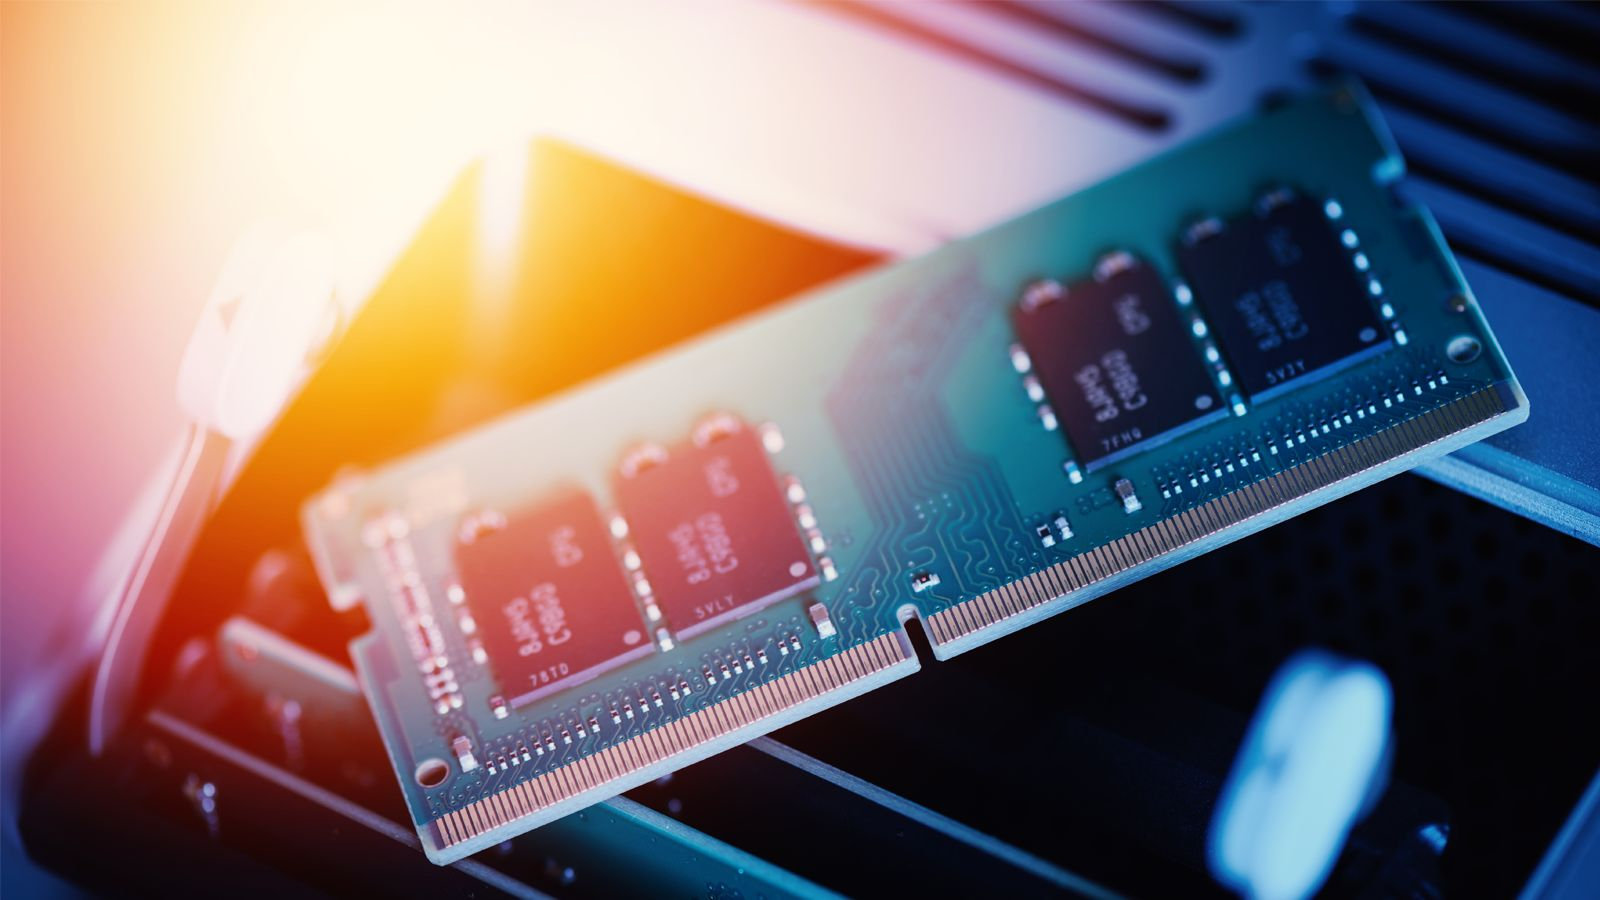 SECO Reduces DDR4 Board Failures to Zero and Design Optimization Time by 35%